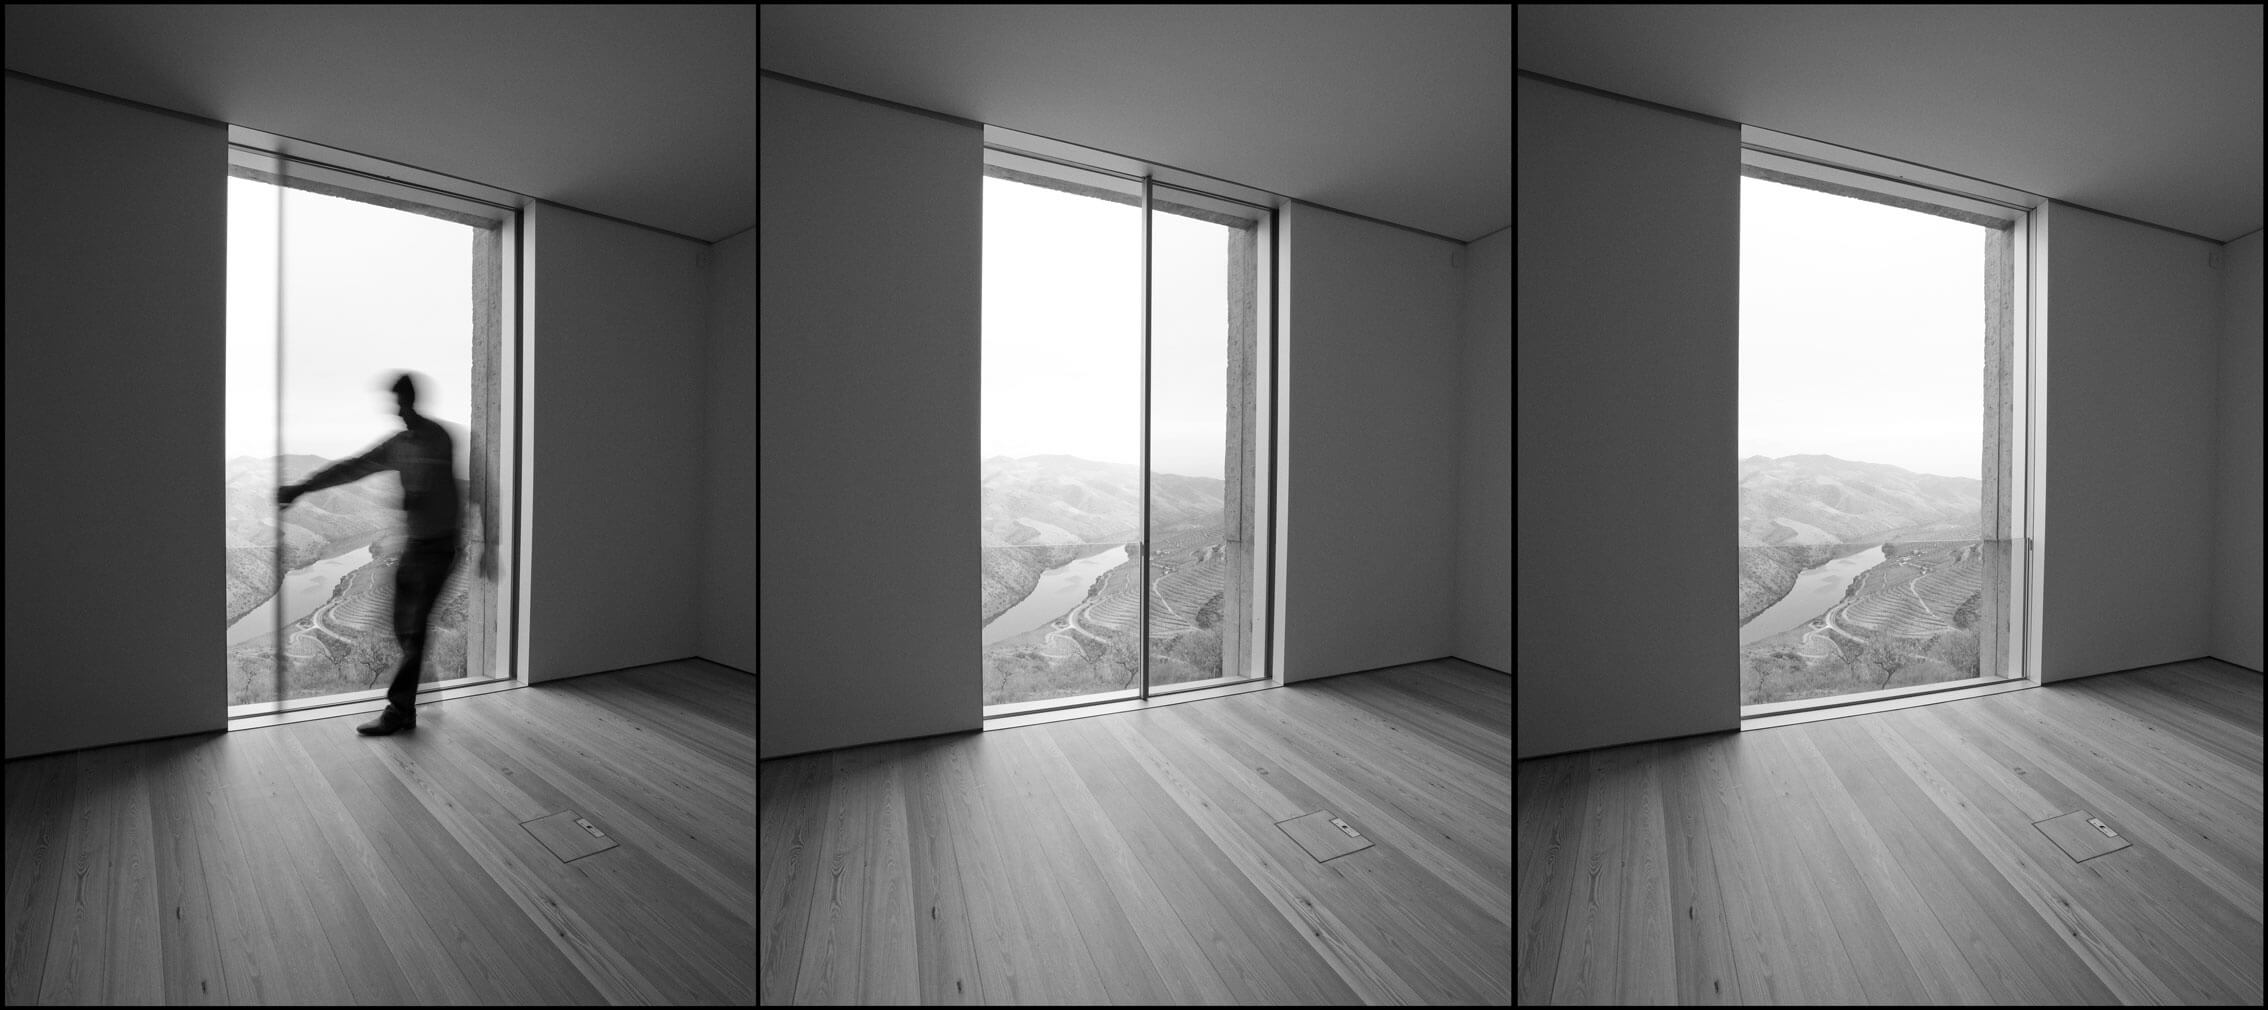 Brief Technical And Architectural History Of The Minimalist Window - Minimalistic black white photo series captures energetic movements mid air